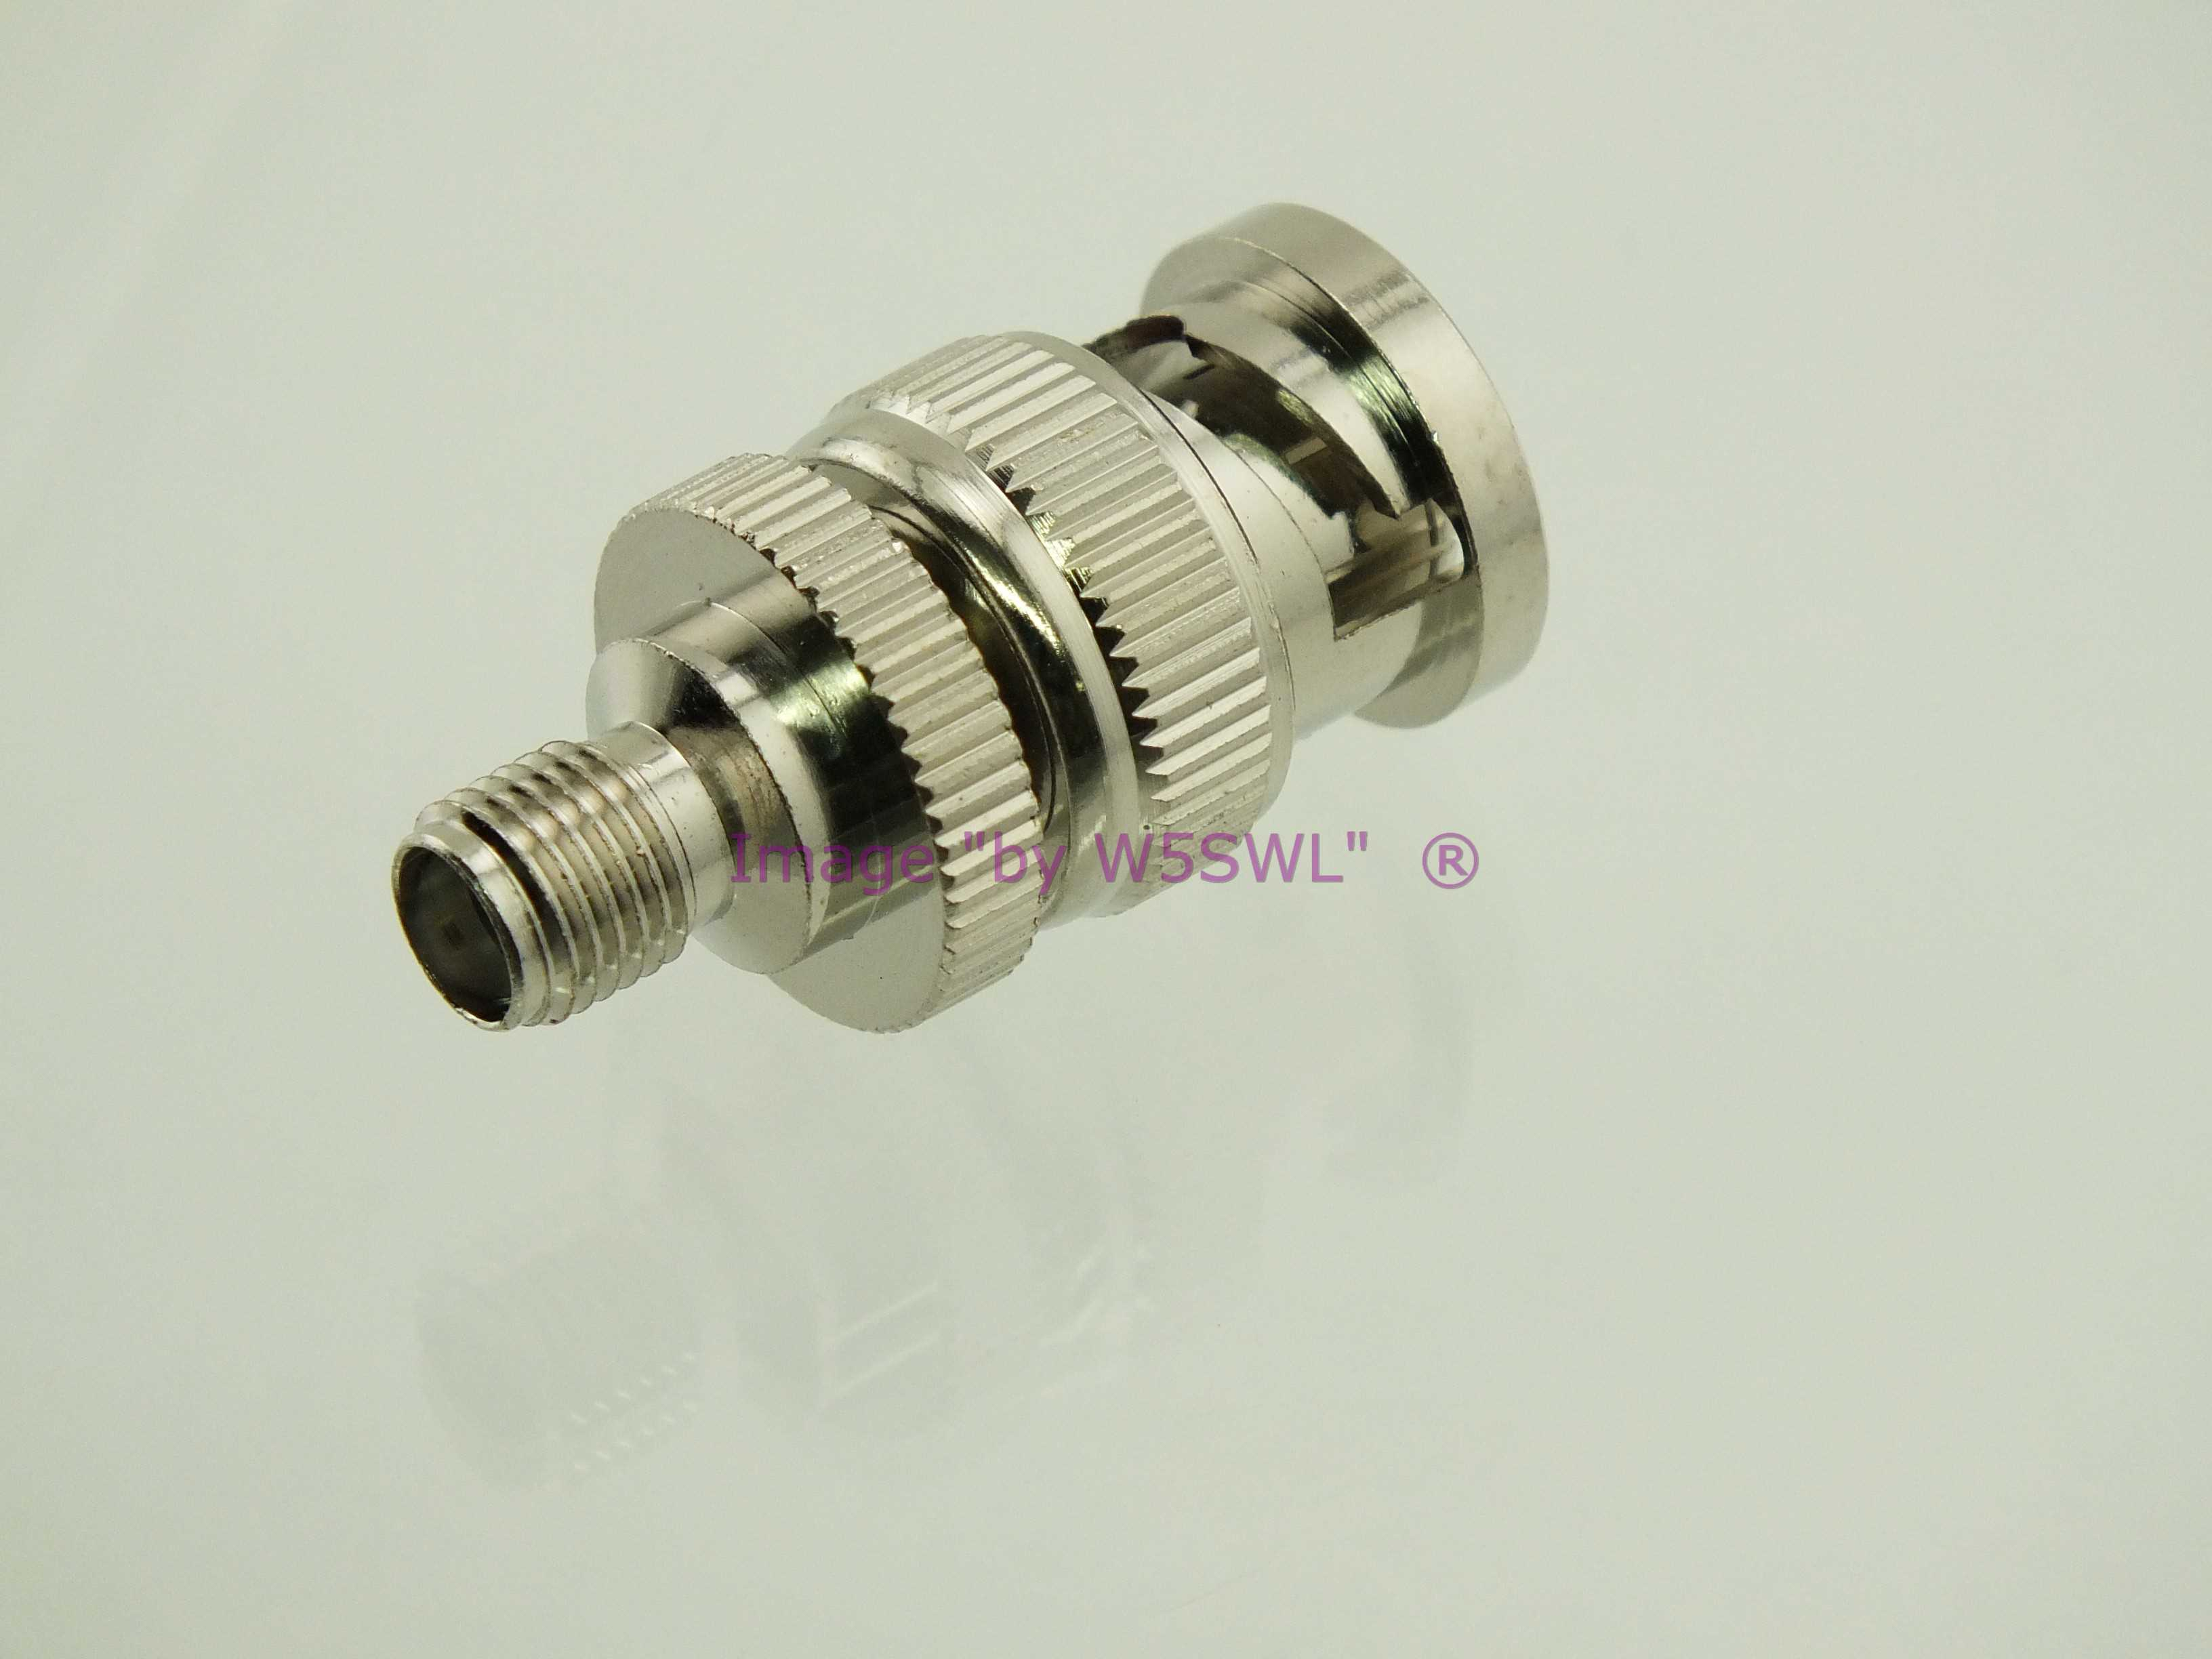 SMA Male to BNC Male Coax Adapter Connector by W5SWL ®